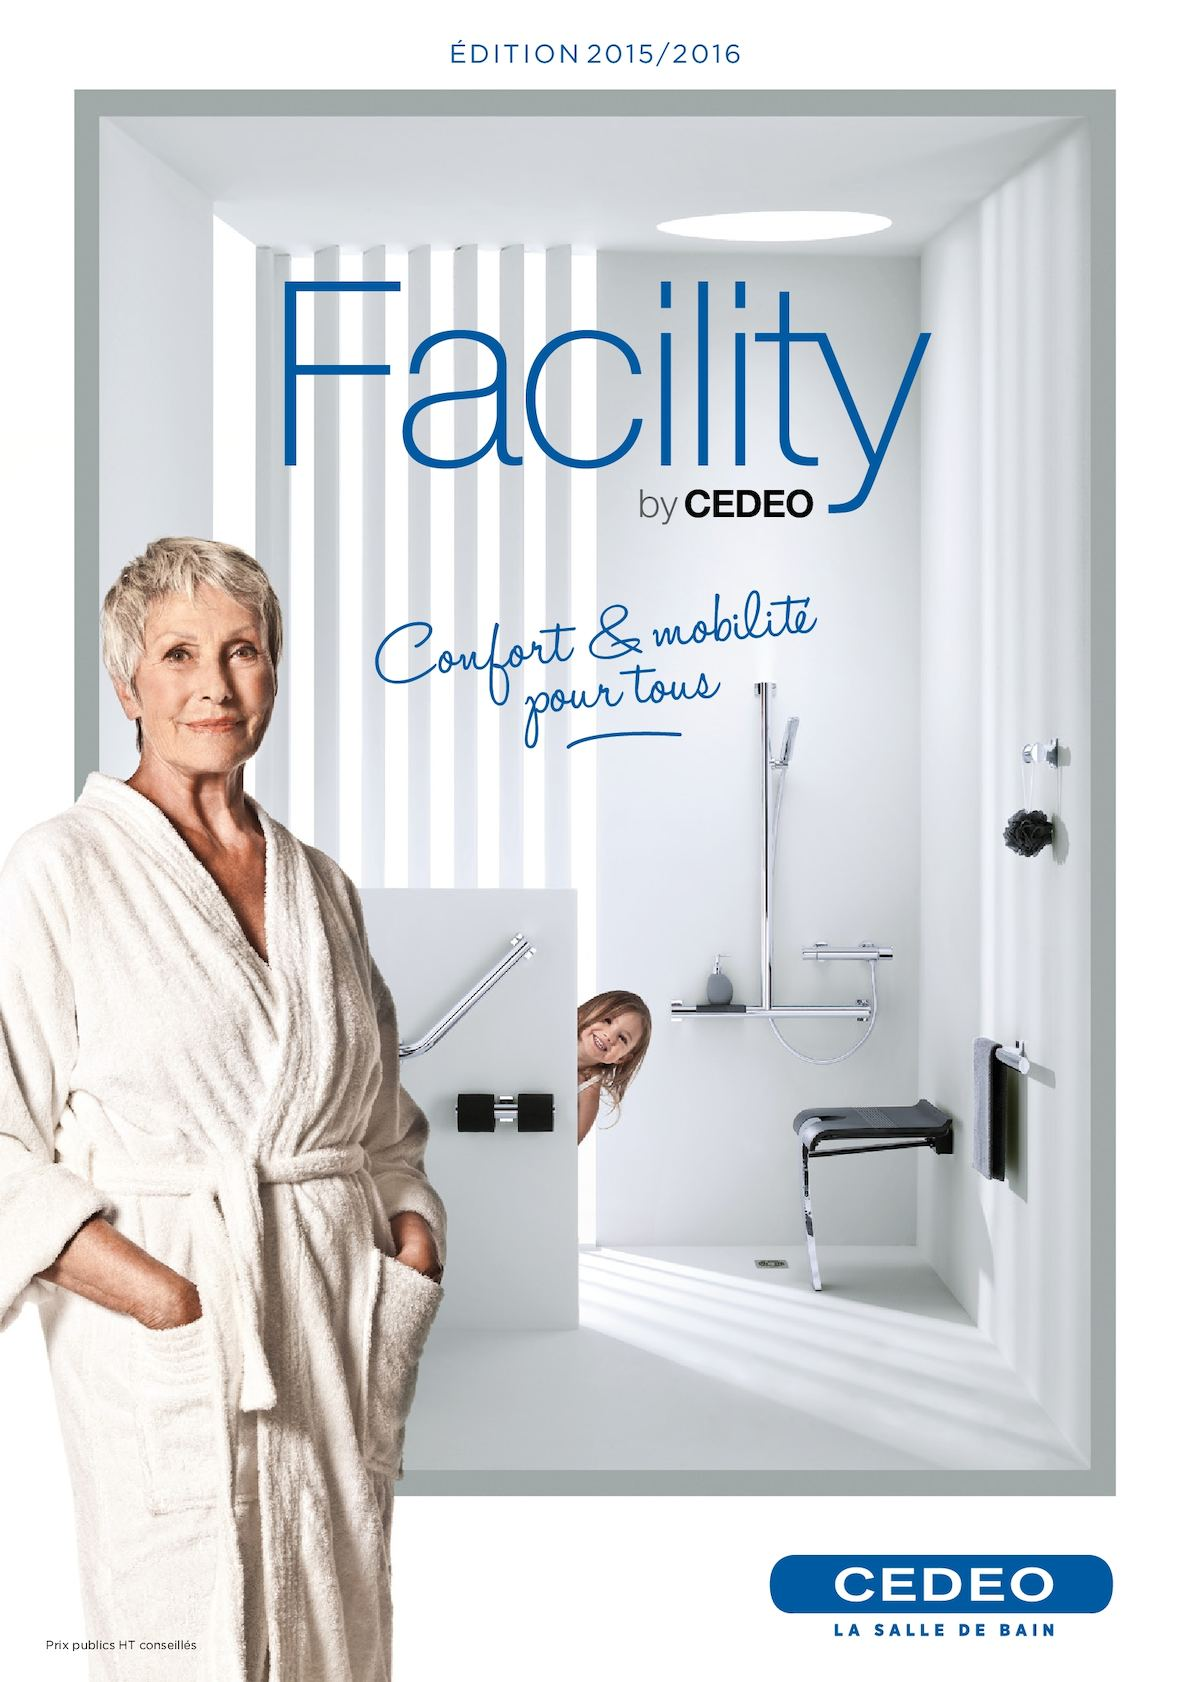 Cedeo Receveur Douche Calaméo Facility 2015 2016 By Cedeo